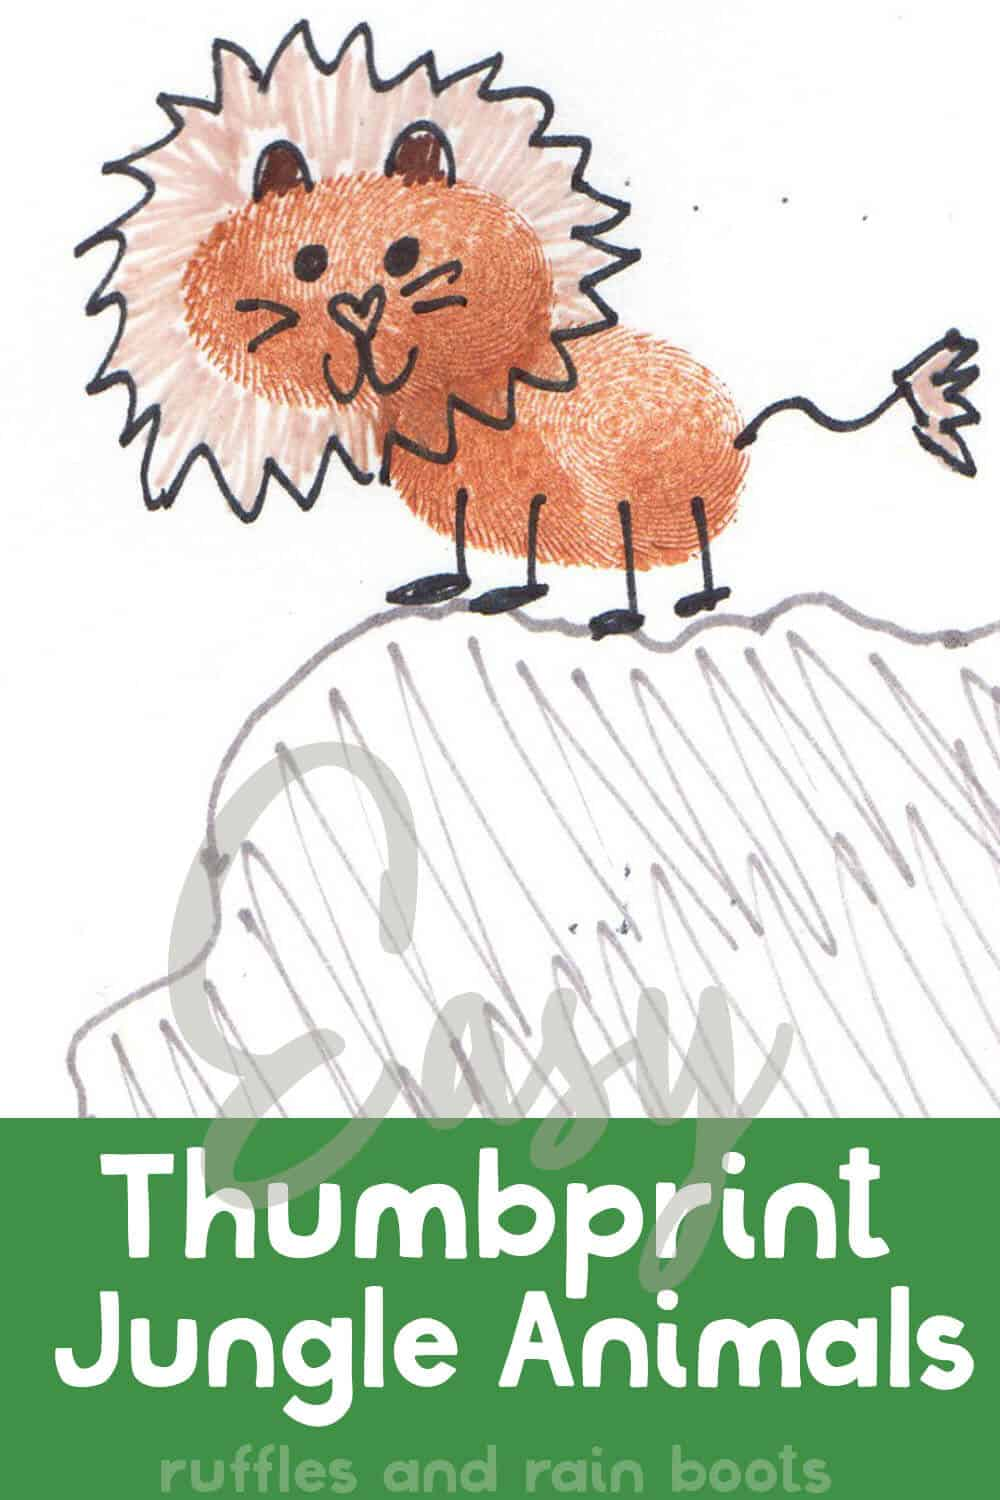 how to draw a lion using a thumbprint as base with text which reads easy thumbprint jungle animals